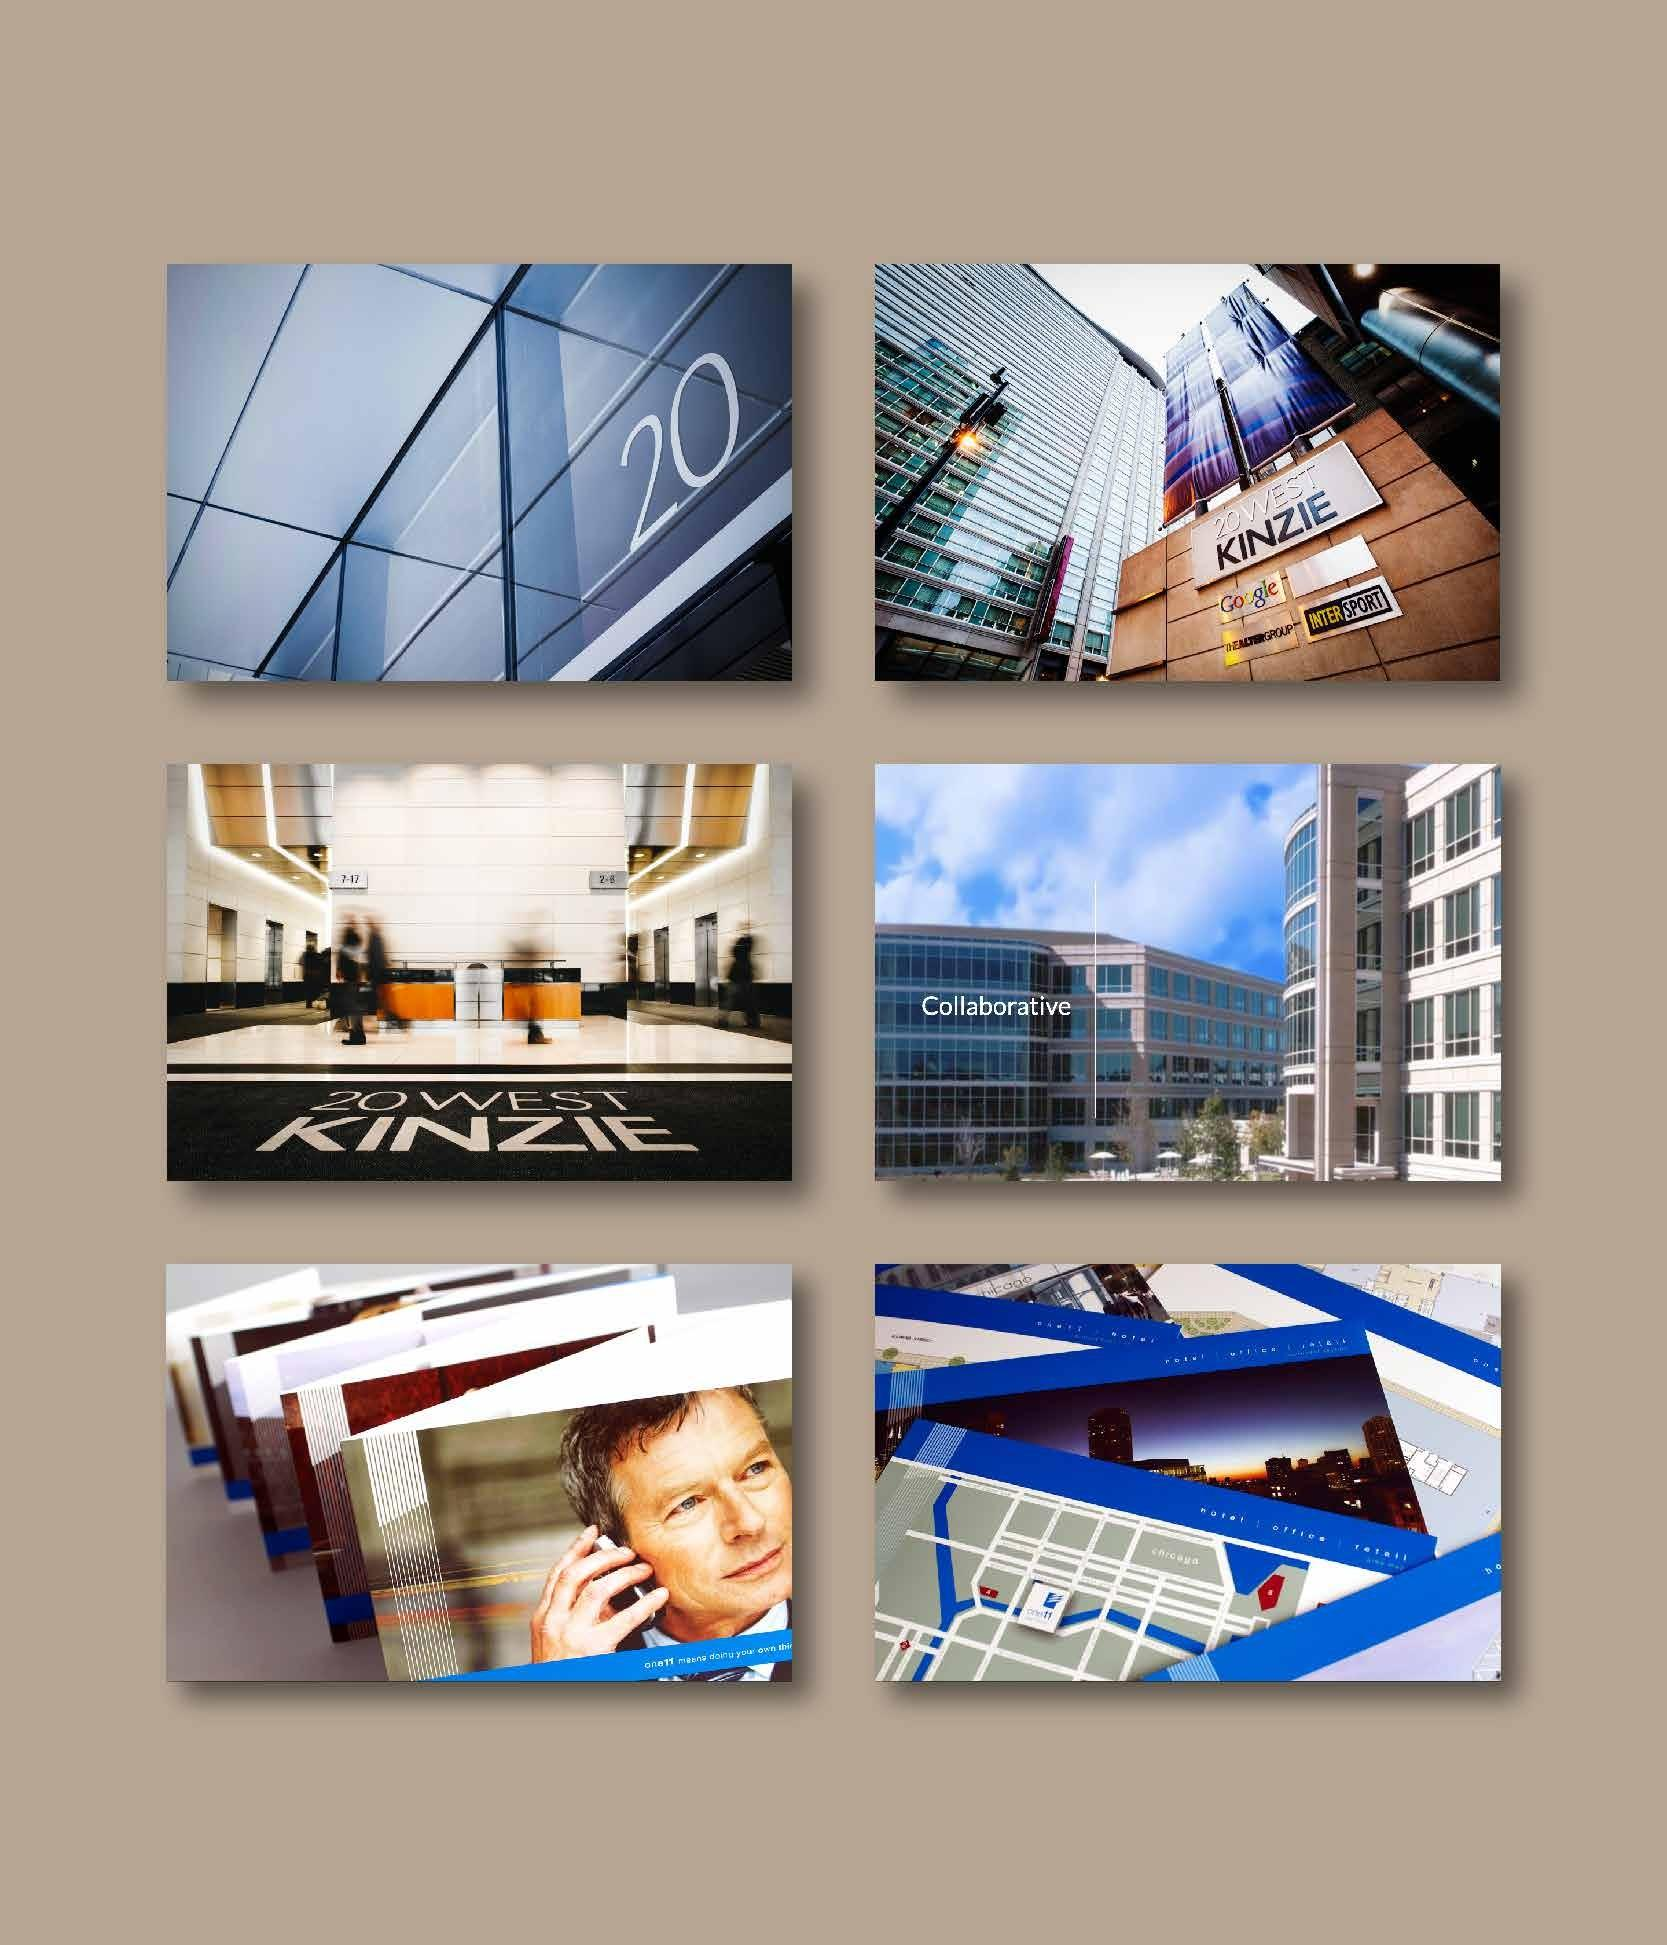 Images of Alter's various locations and brochures.